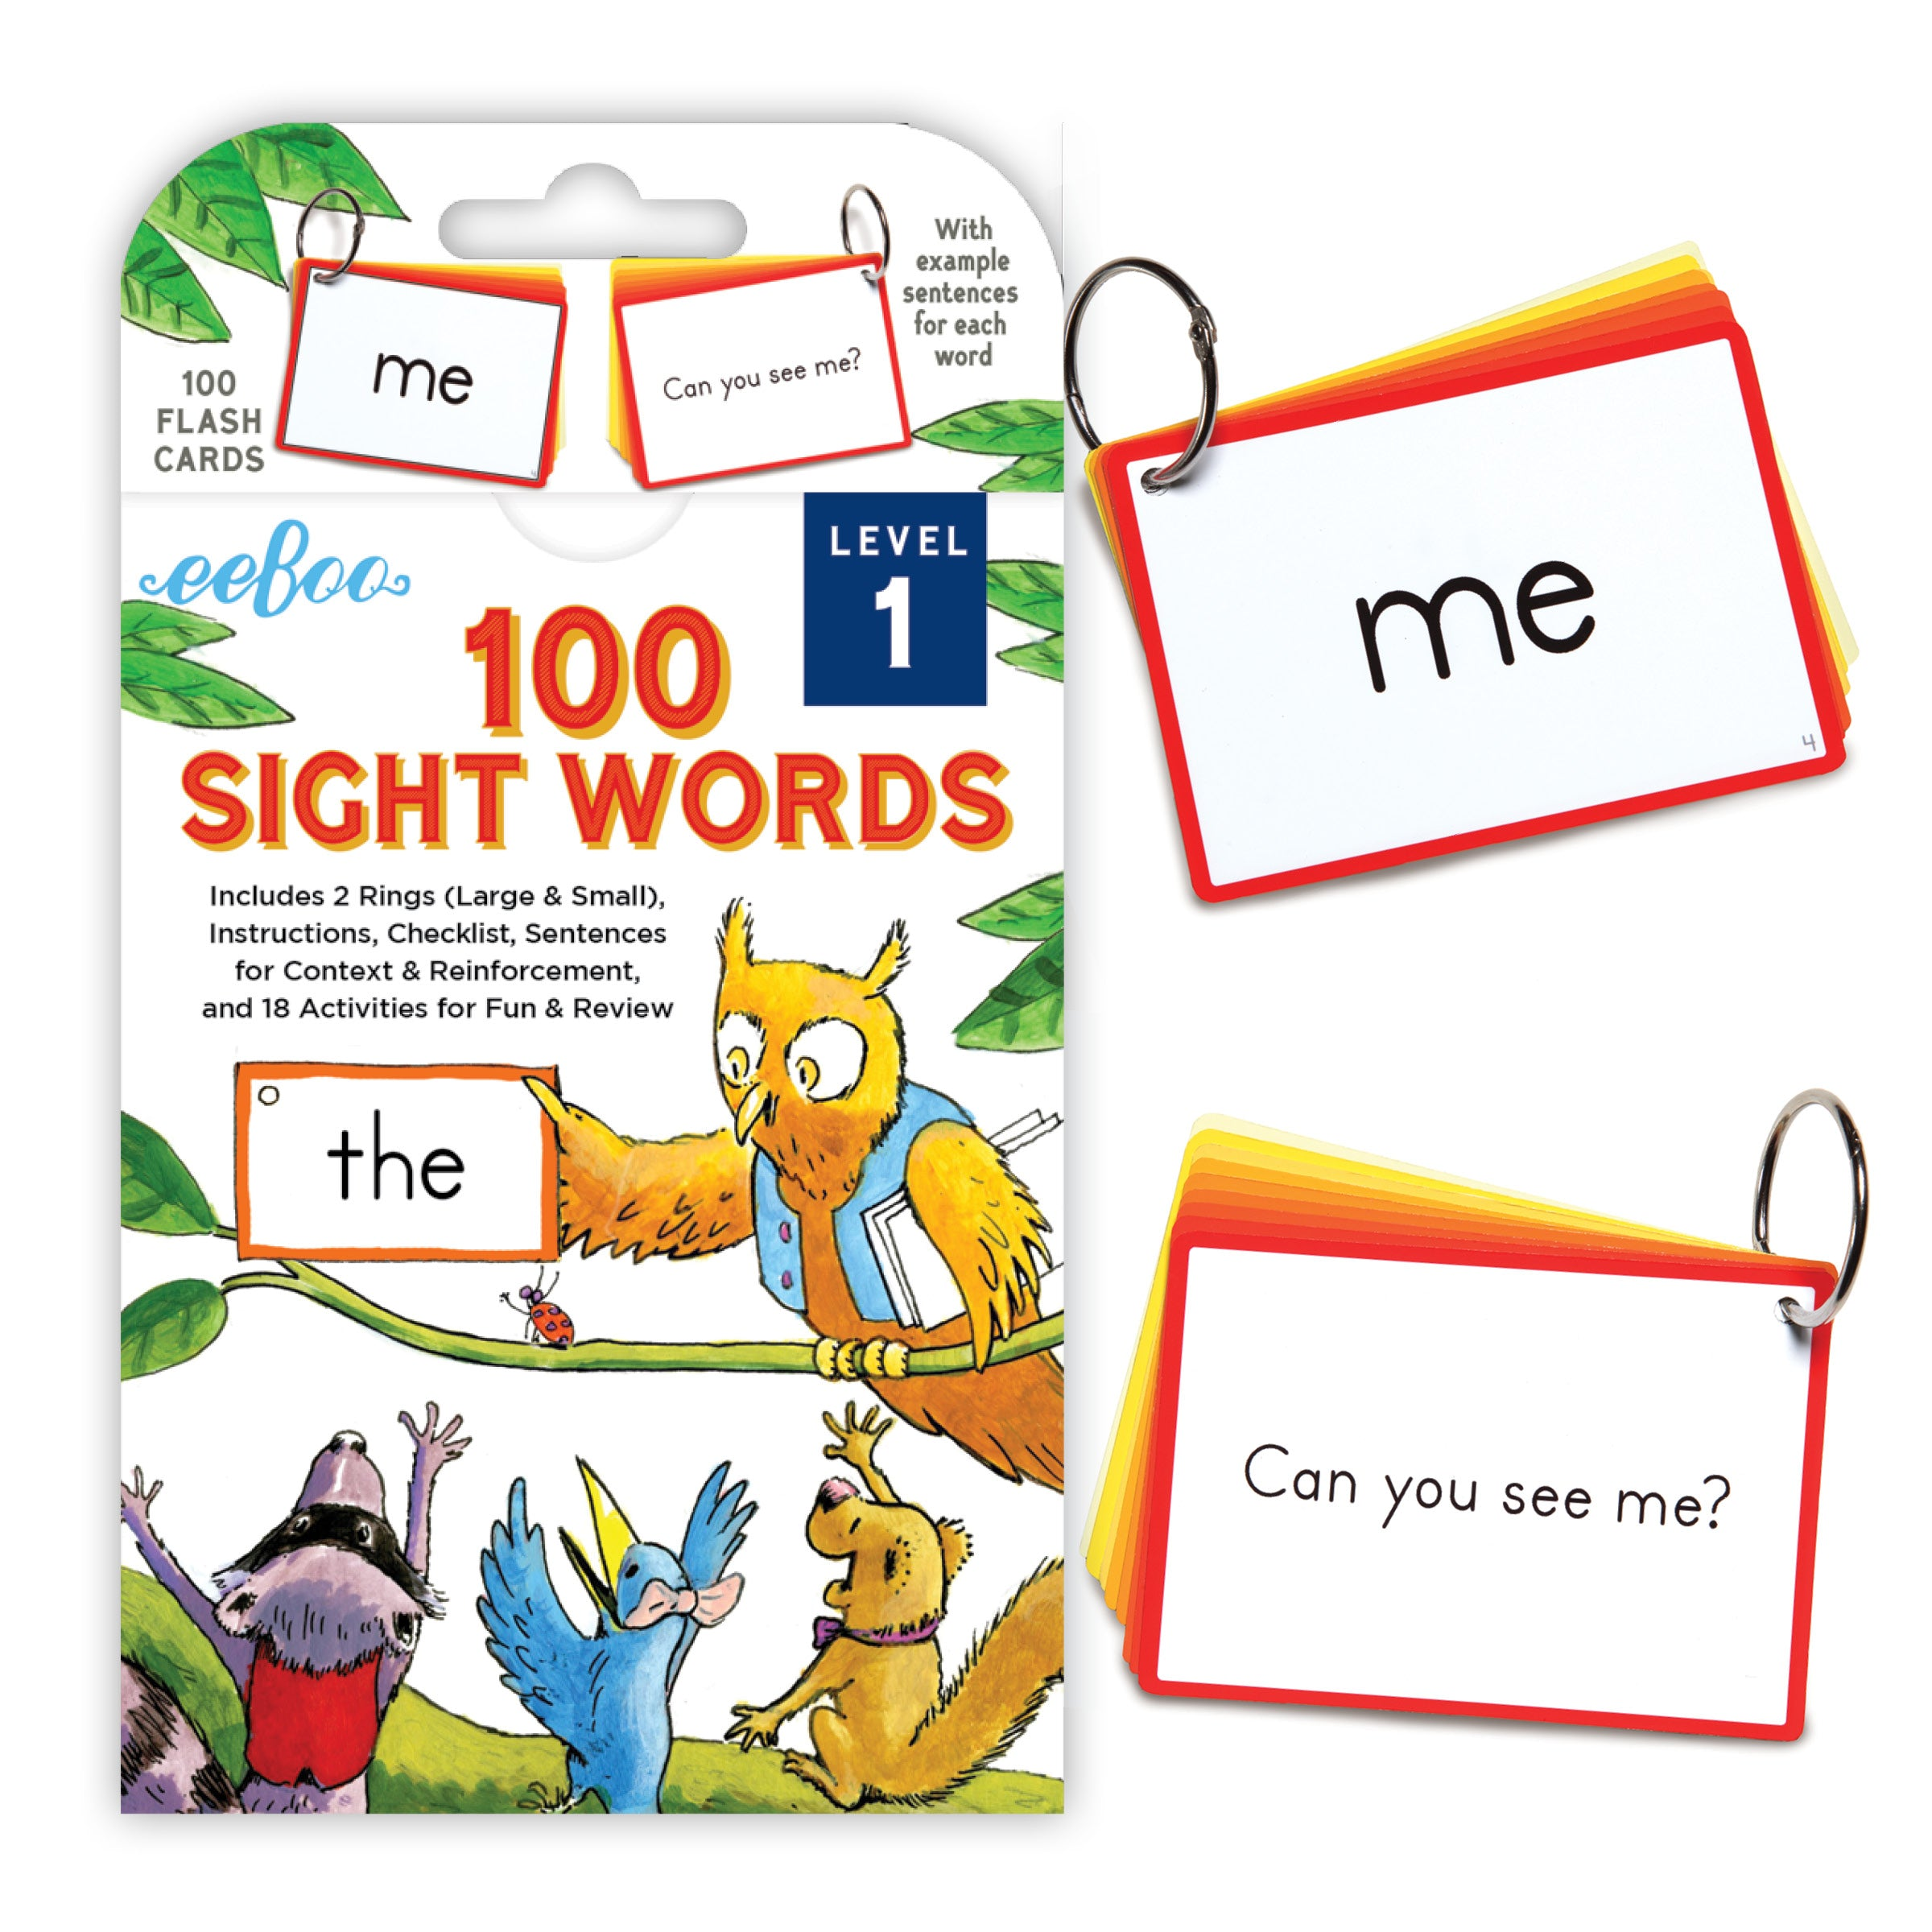 sight word cards - level 1